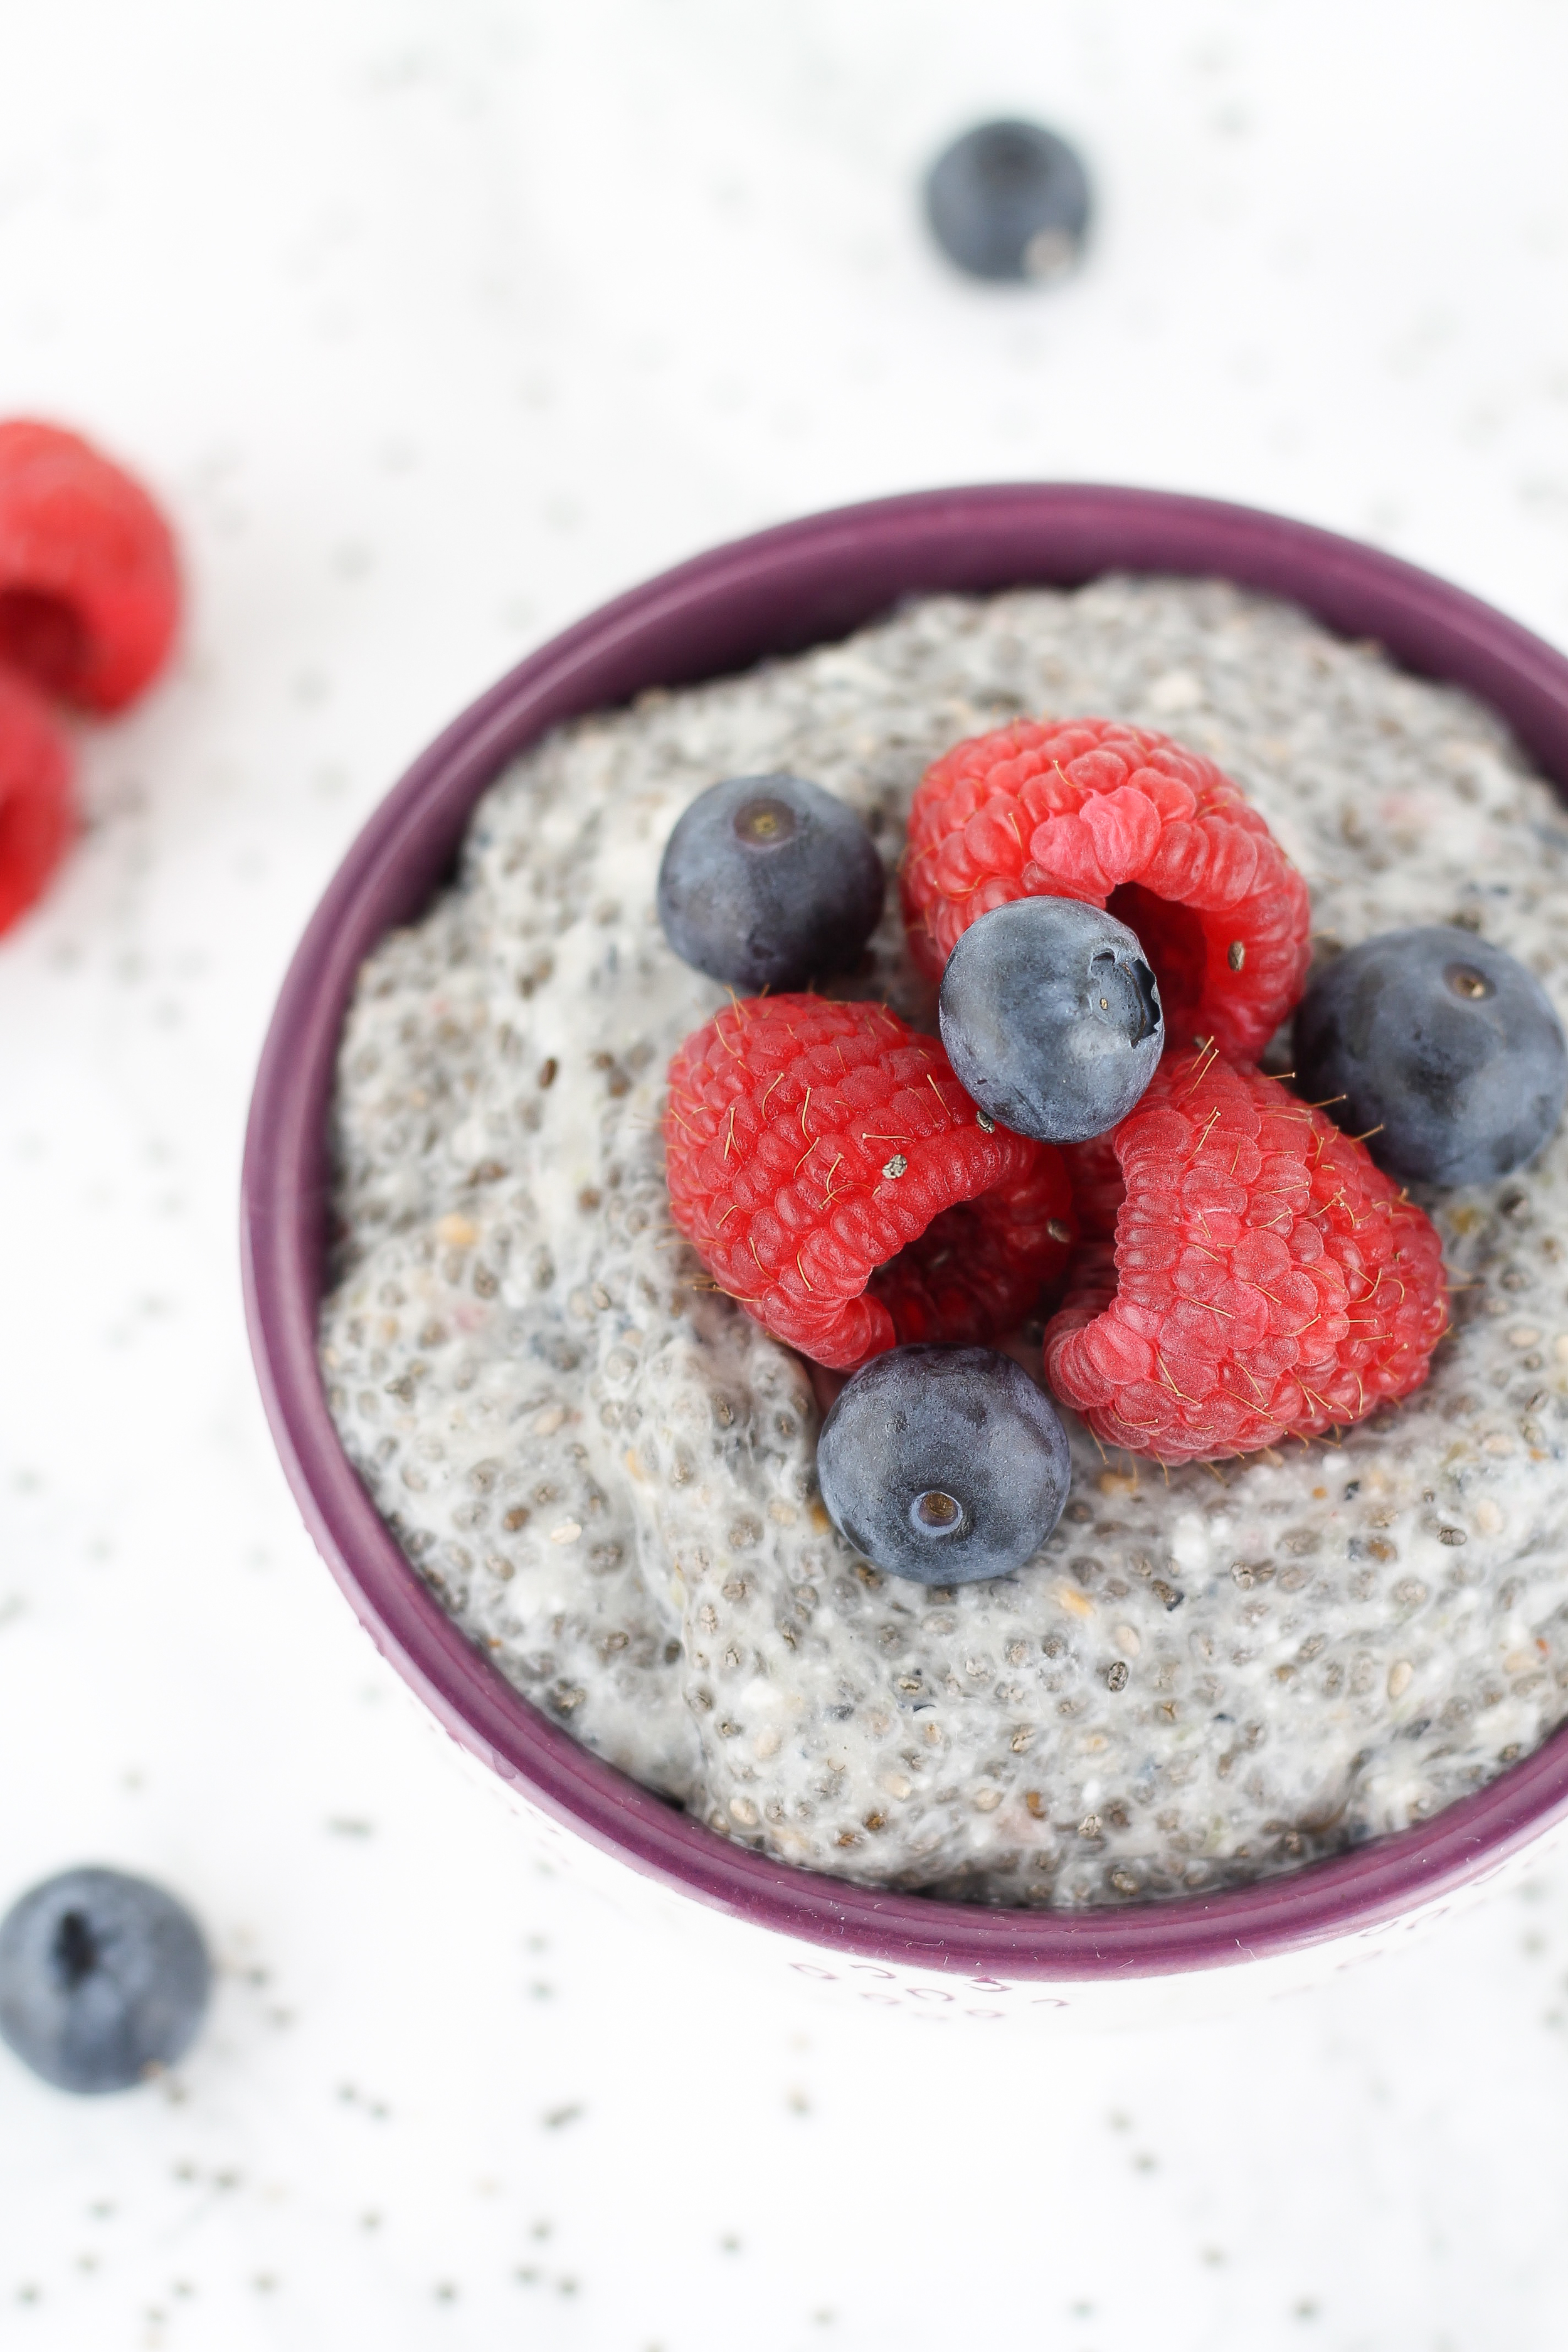 Chia Seeds, Easy Paleo Breakfasts, Chia Seed Pudding, Homemade, Paleo Recipes, Easy Breakfasts, Real Food Recipes